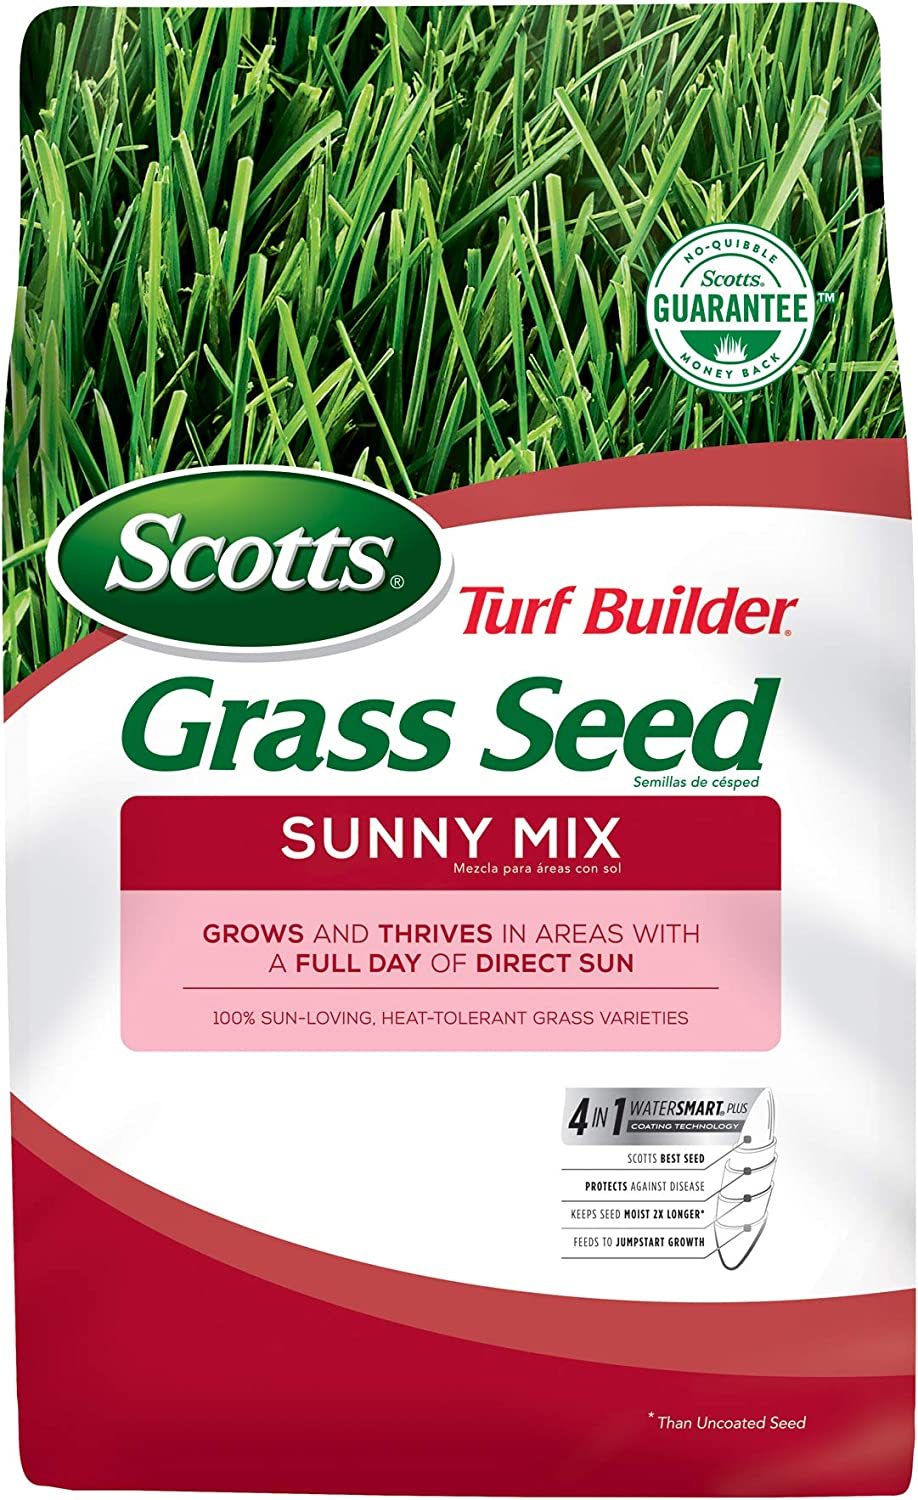 Cheap mail order specialty store High order Scotts Turf Builder 3lb. Mix Sunny